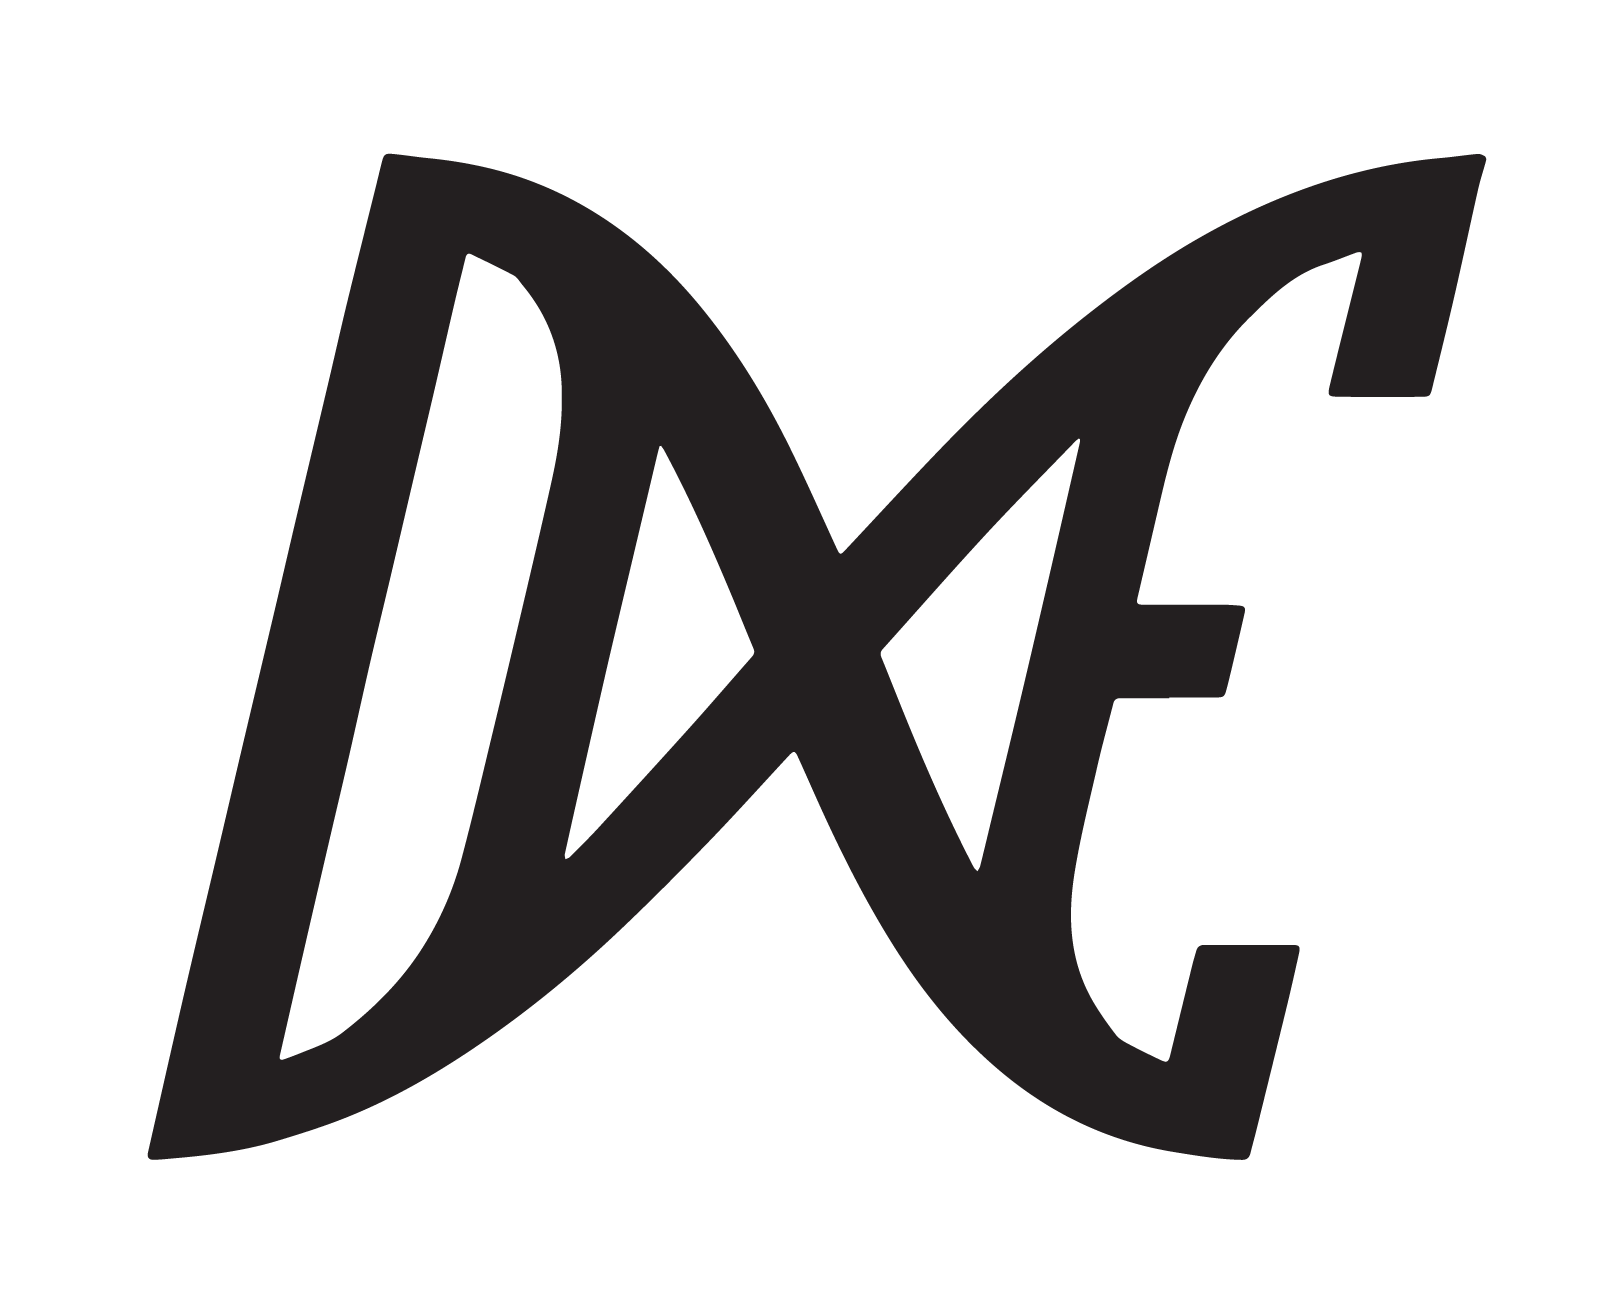 DxE Direct action everywhere logo